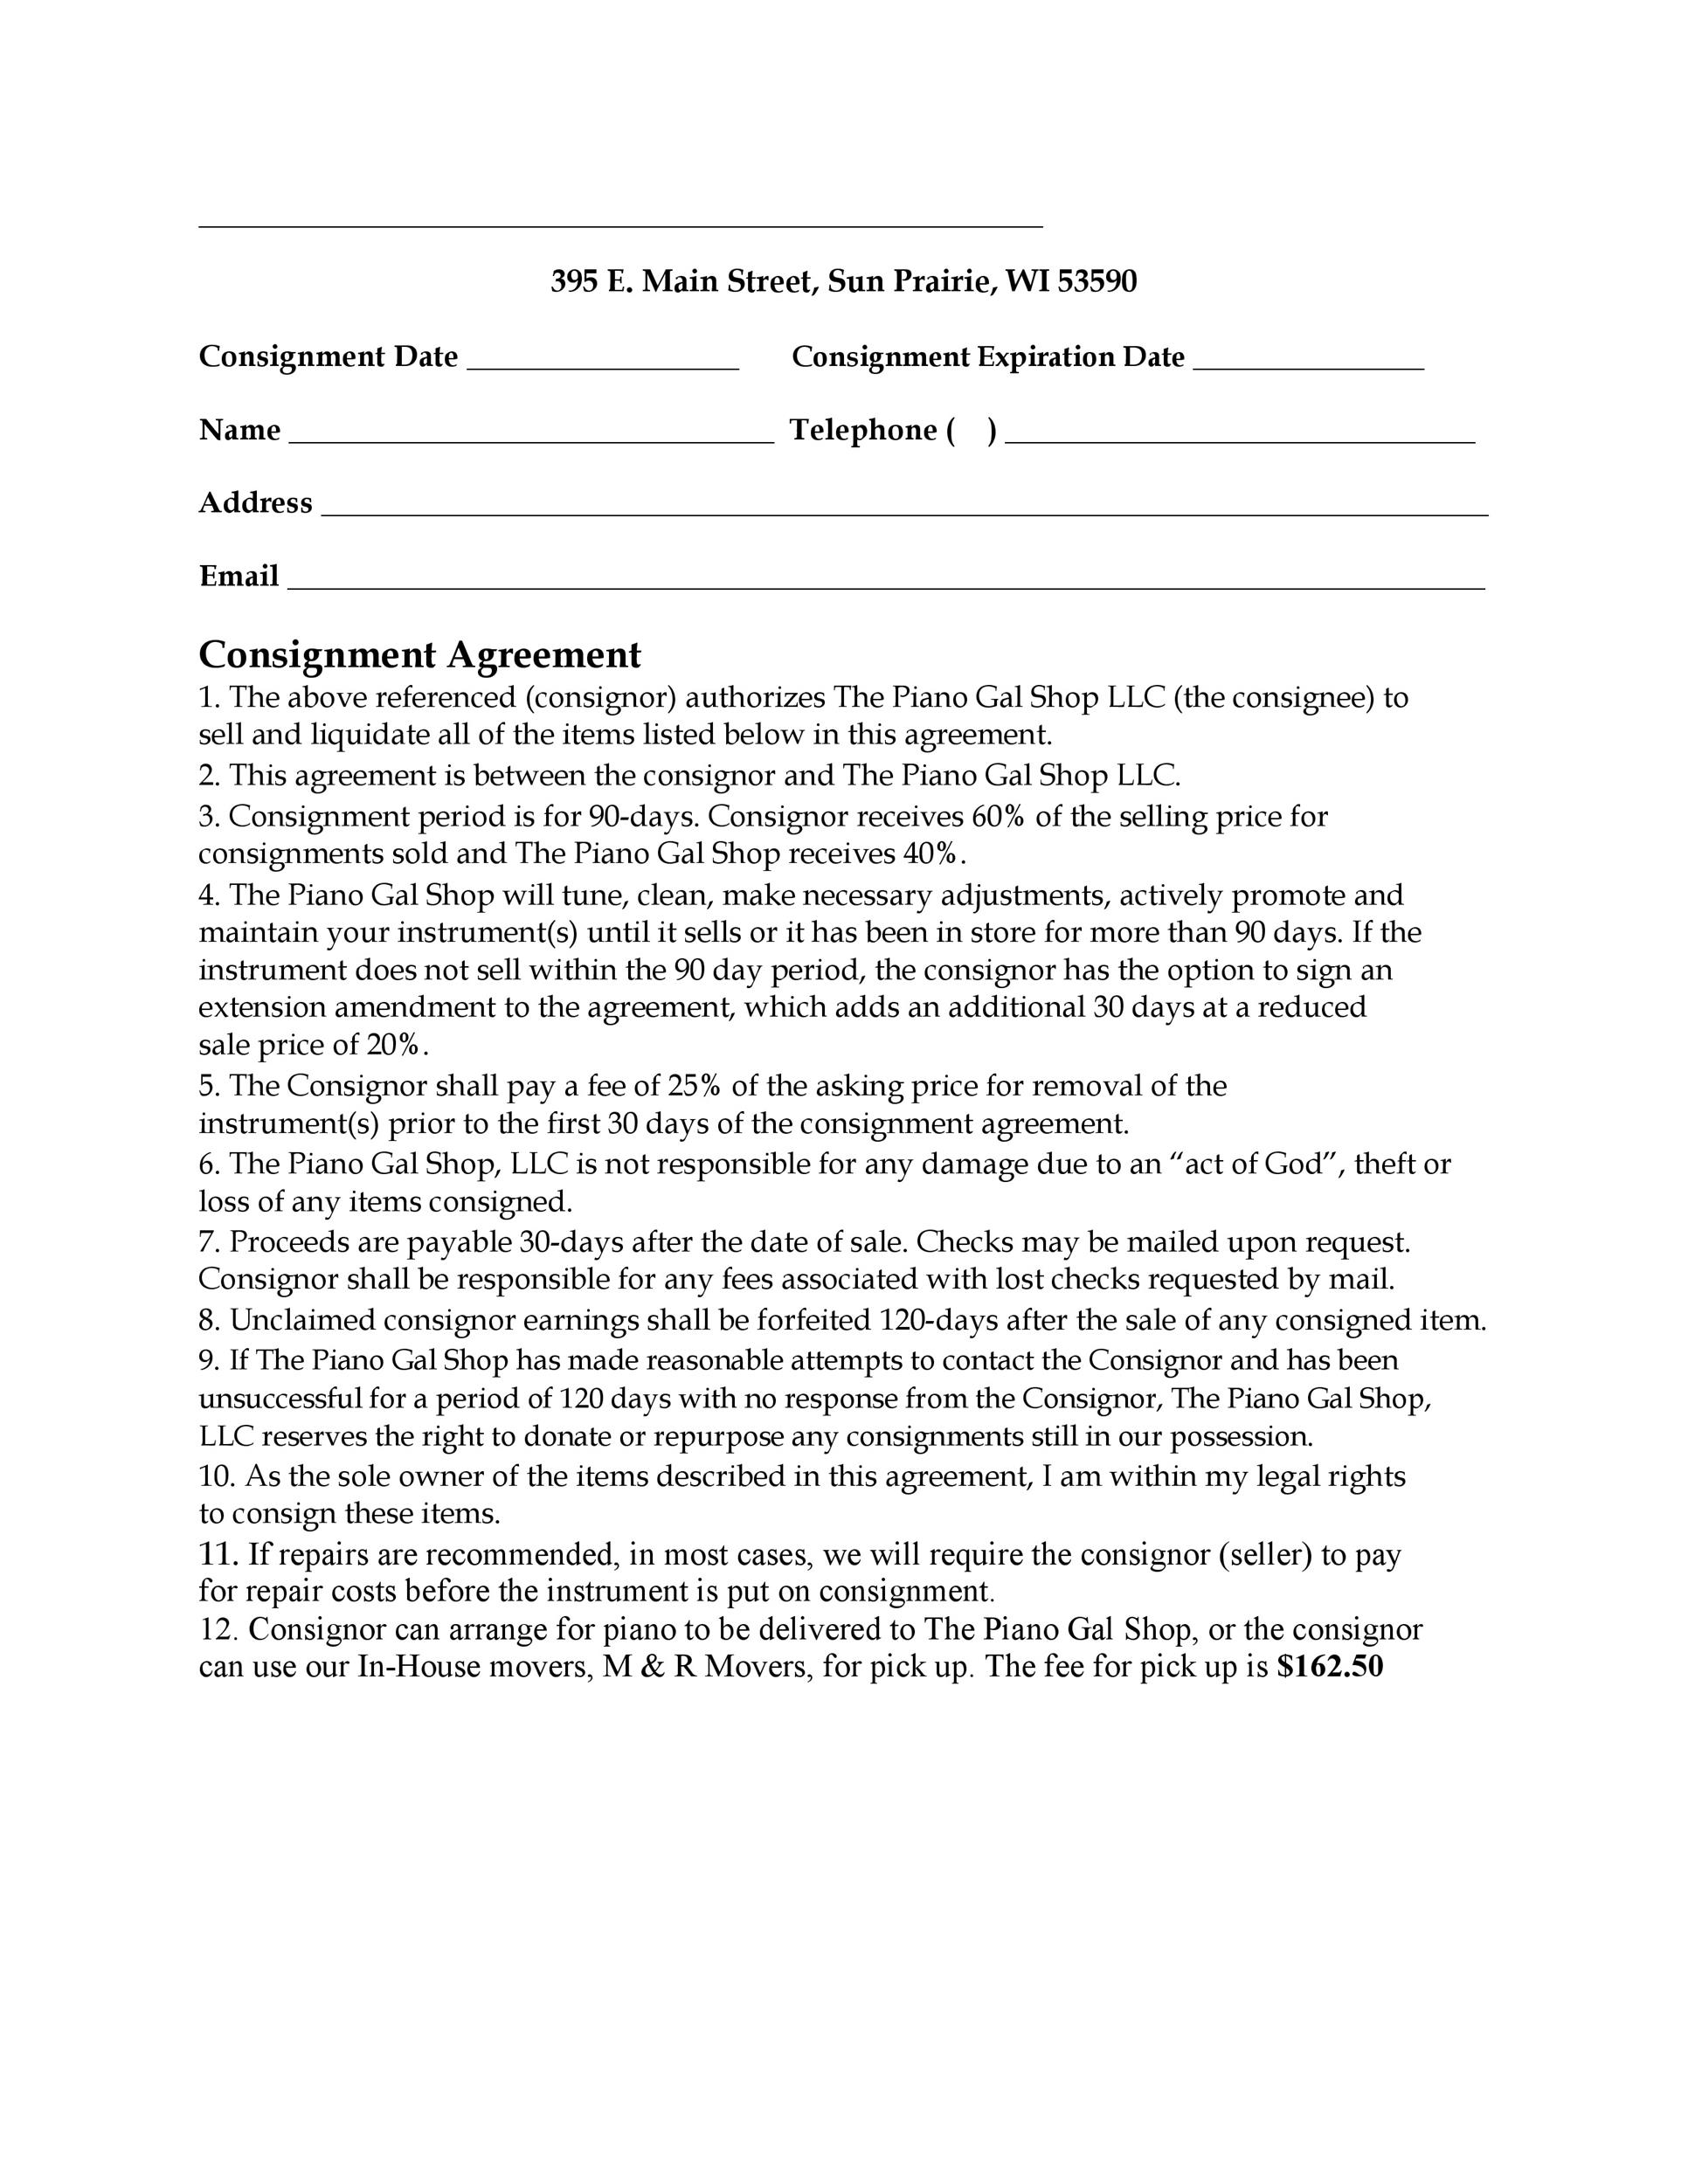 Free Consignment Agreement Template 12